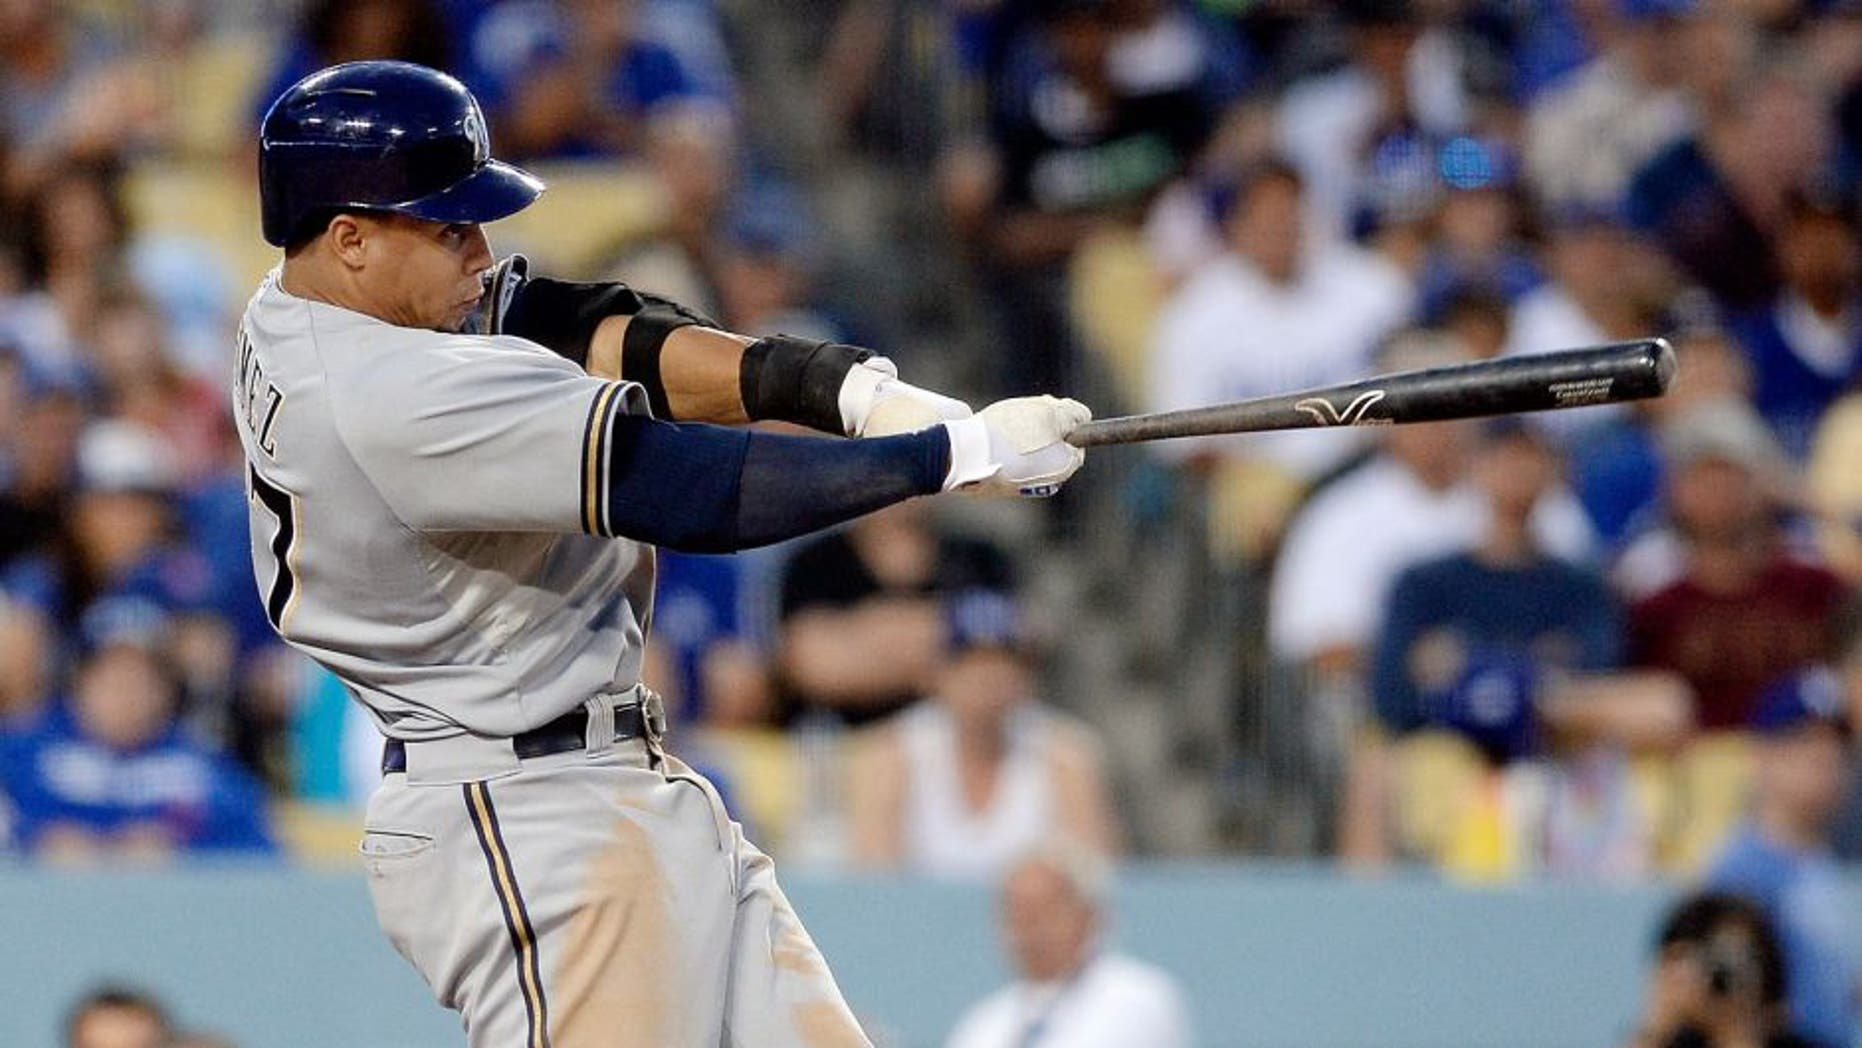 LOS ANGELES, CA - JULY 11: Carlos Gomez #27 of the Milwaukee Brewers hits a three run double during the third inning of the baseball game July 11, 2015 at Dodger Stadium in Los Angeles, California. (Photo by Kevork Djansezian/Getty Images)